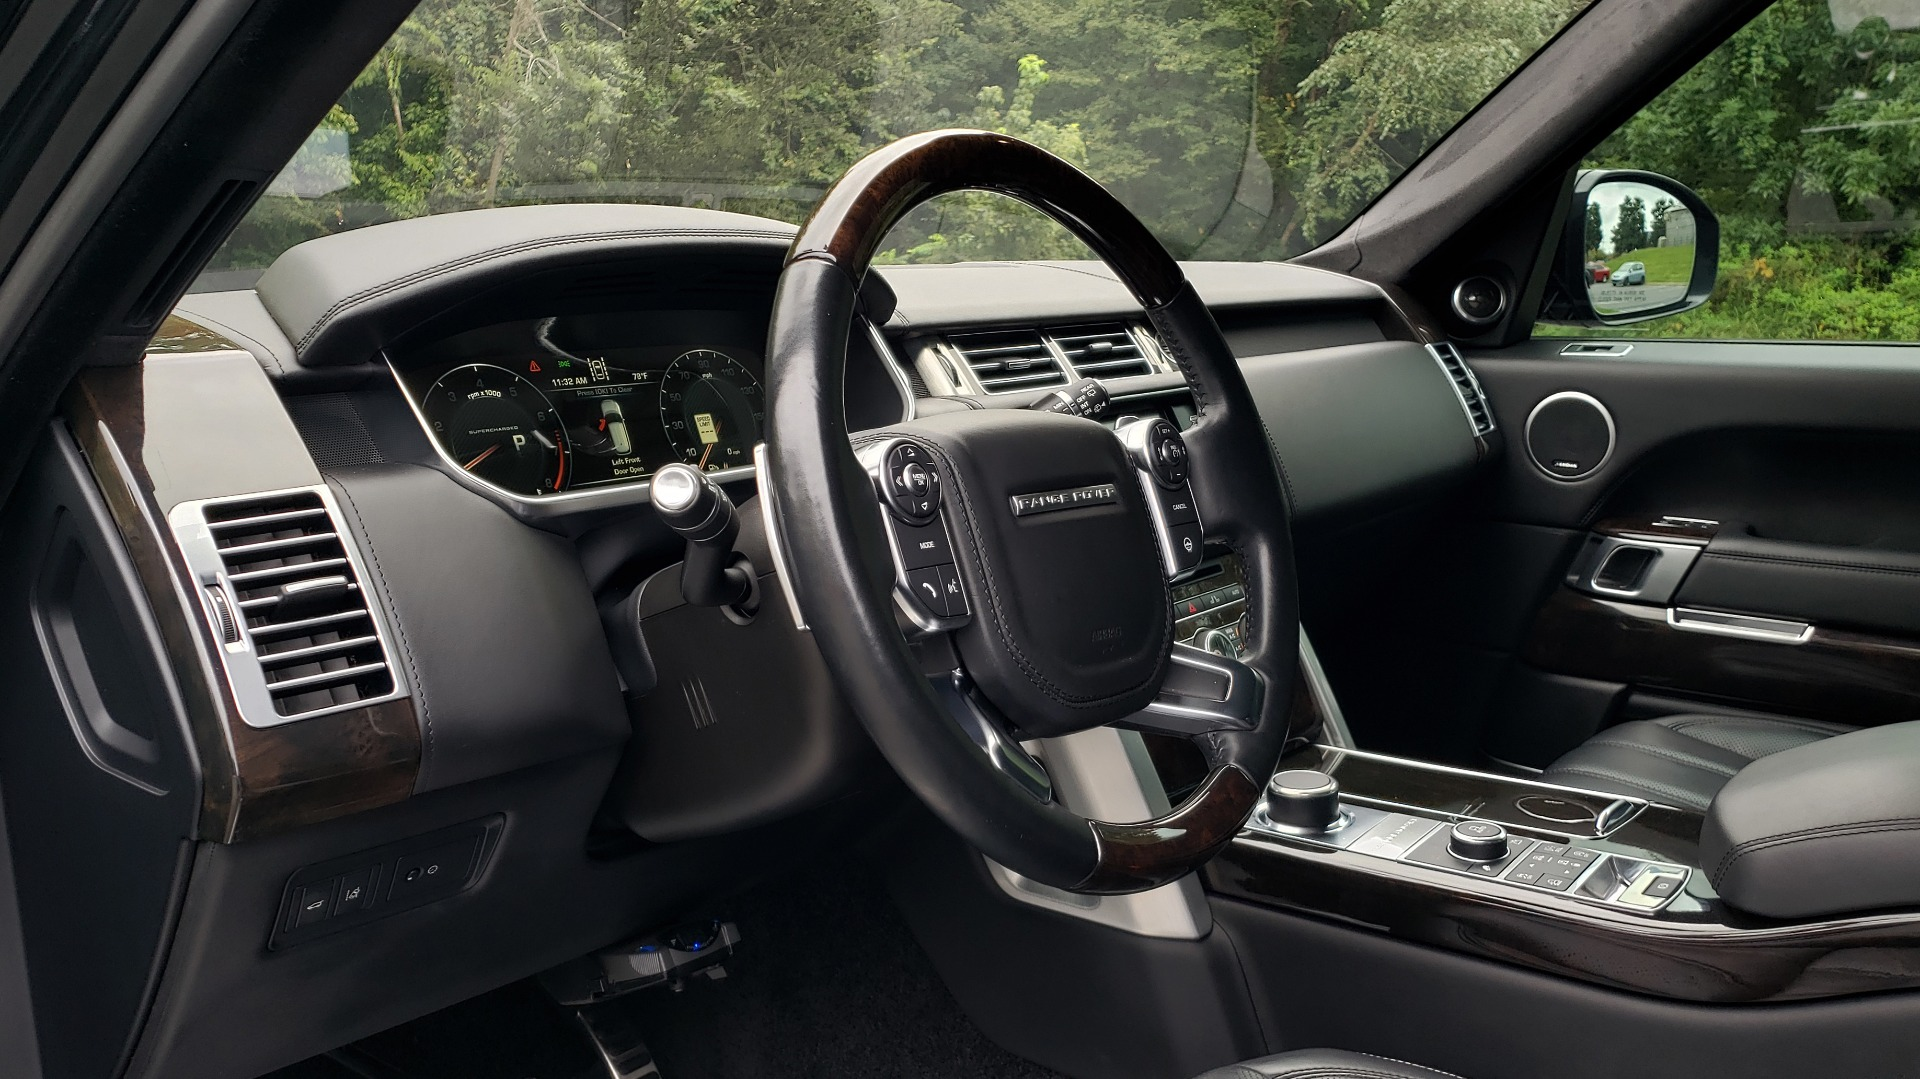 Used 2016 Land Rover RANGE ROVER AUTOBIOGRAPHY / SC-V8 / LWB / PANO-ROOF / NAV / MERIDIAN / ENT / REARVIEW for sale Sold at Formula Imports in Charlotte NC 28227 48